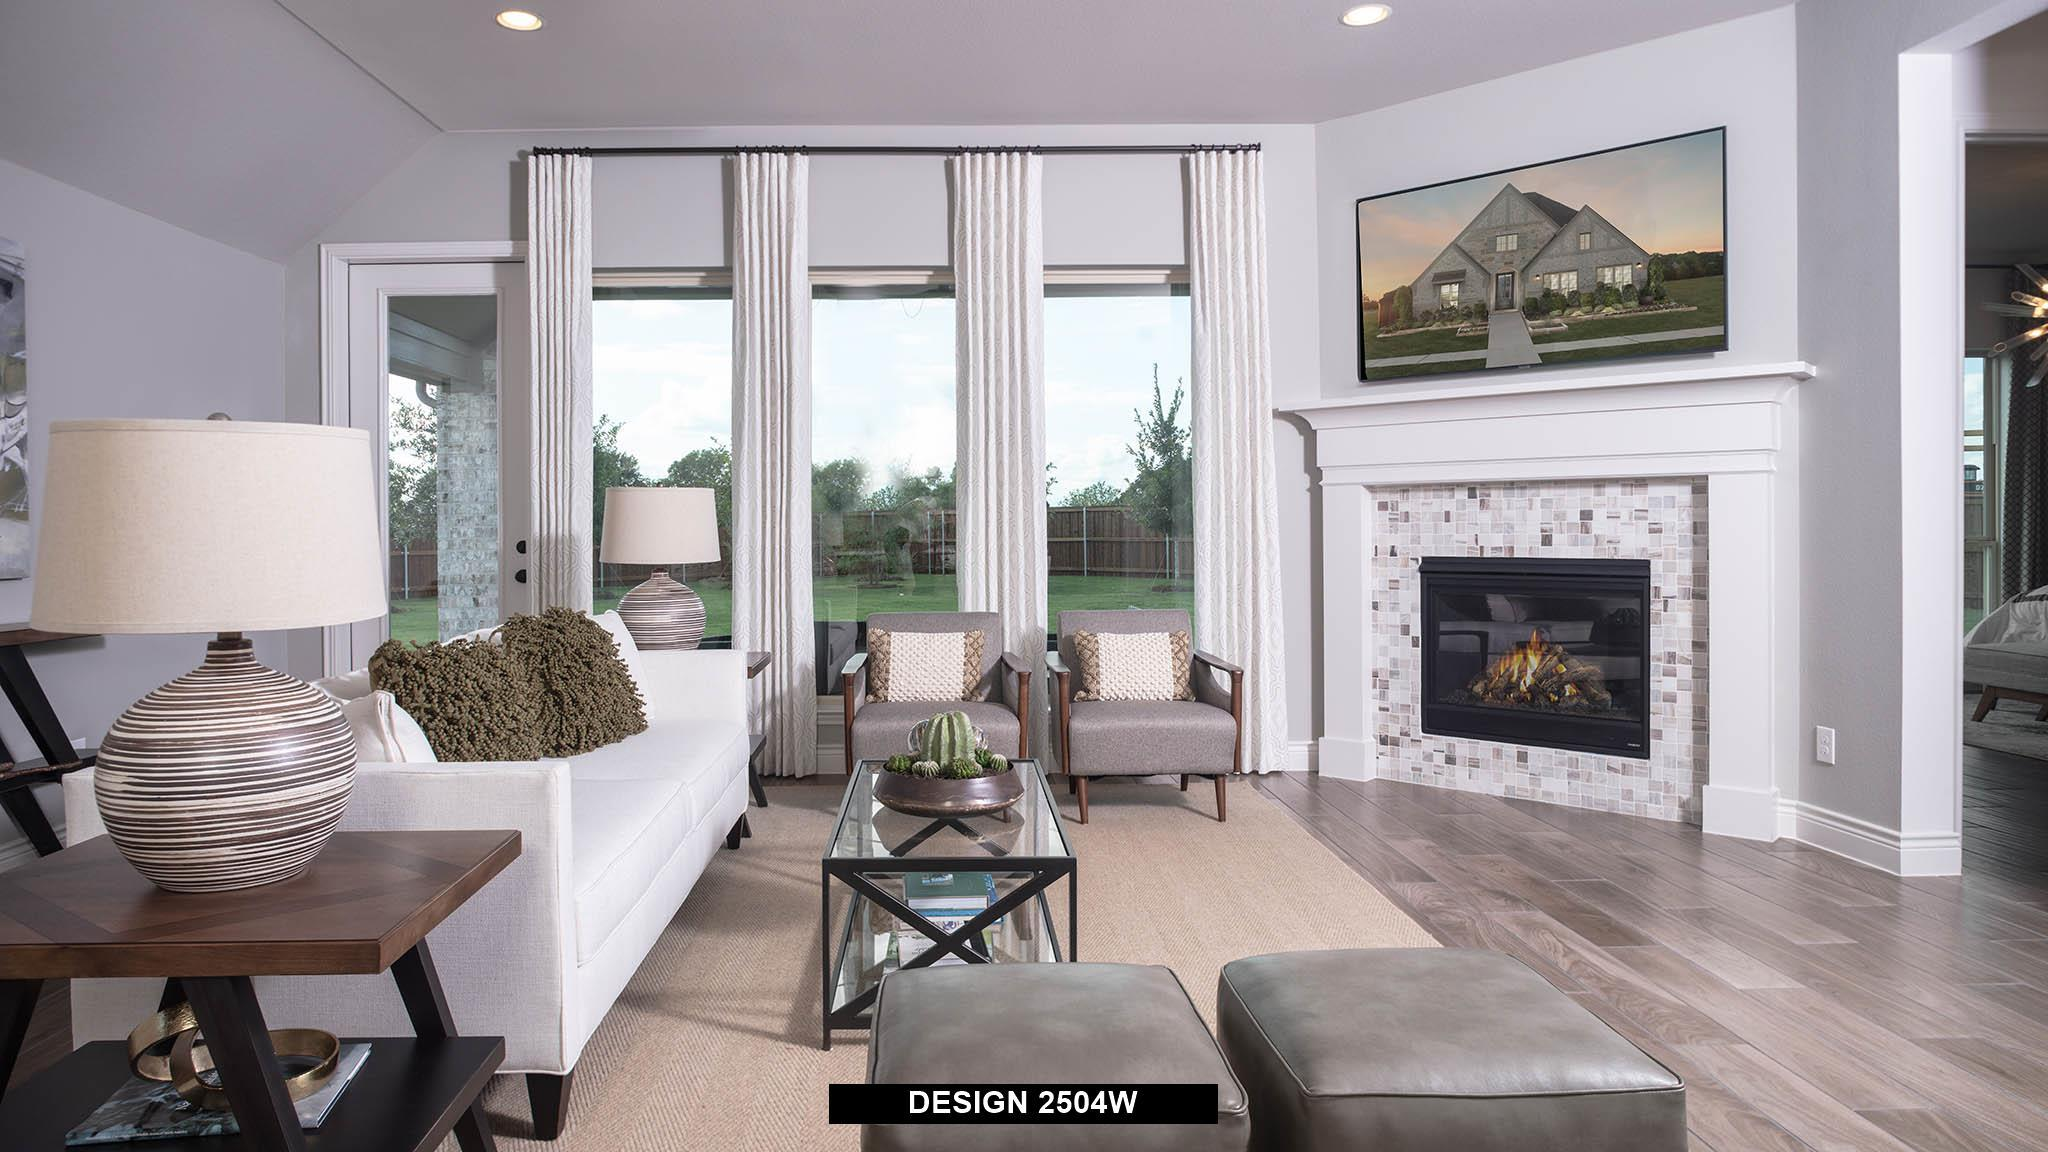 Living Area featured in the 2504W By Perry Homes in San Antonio, TX